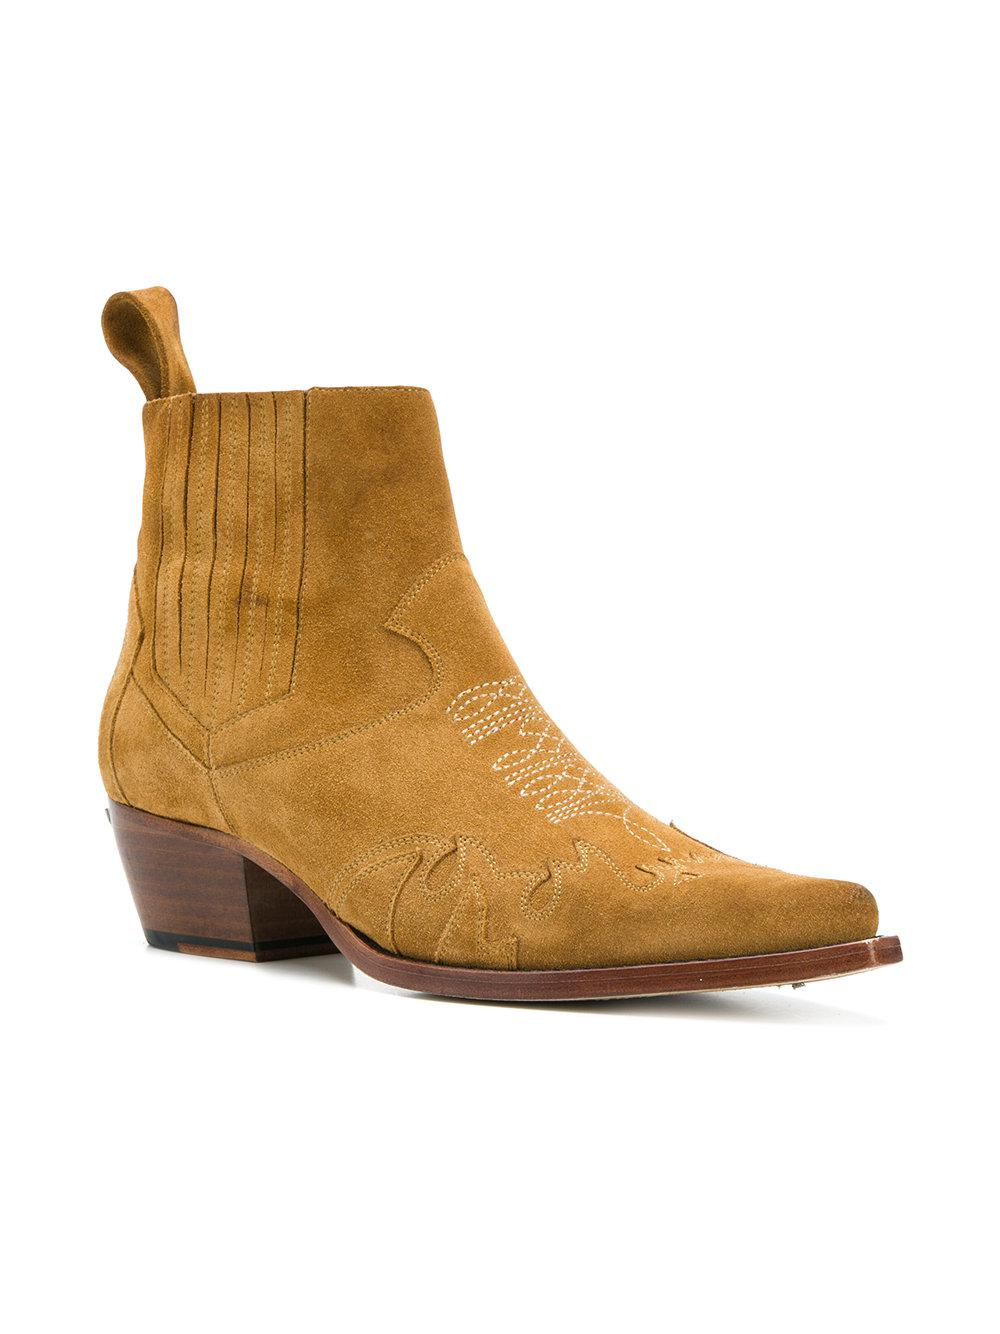 Zadig & Voltaire Leather Erin Cut Bootsa in Brown